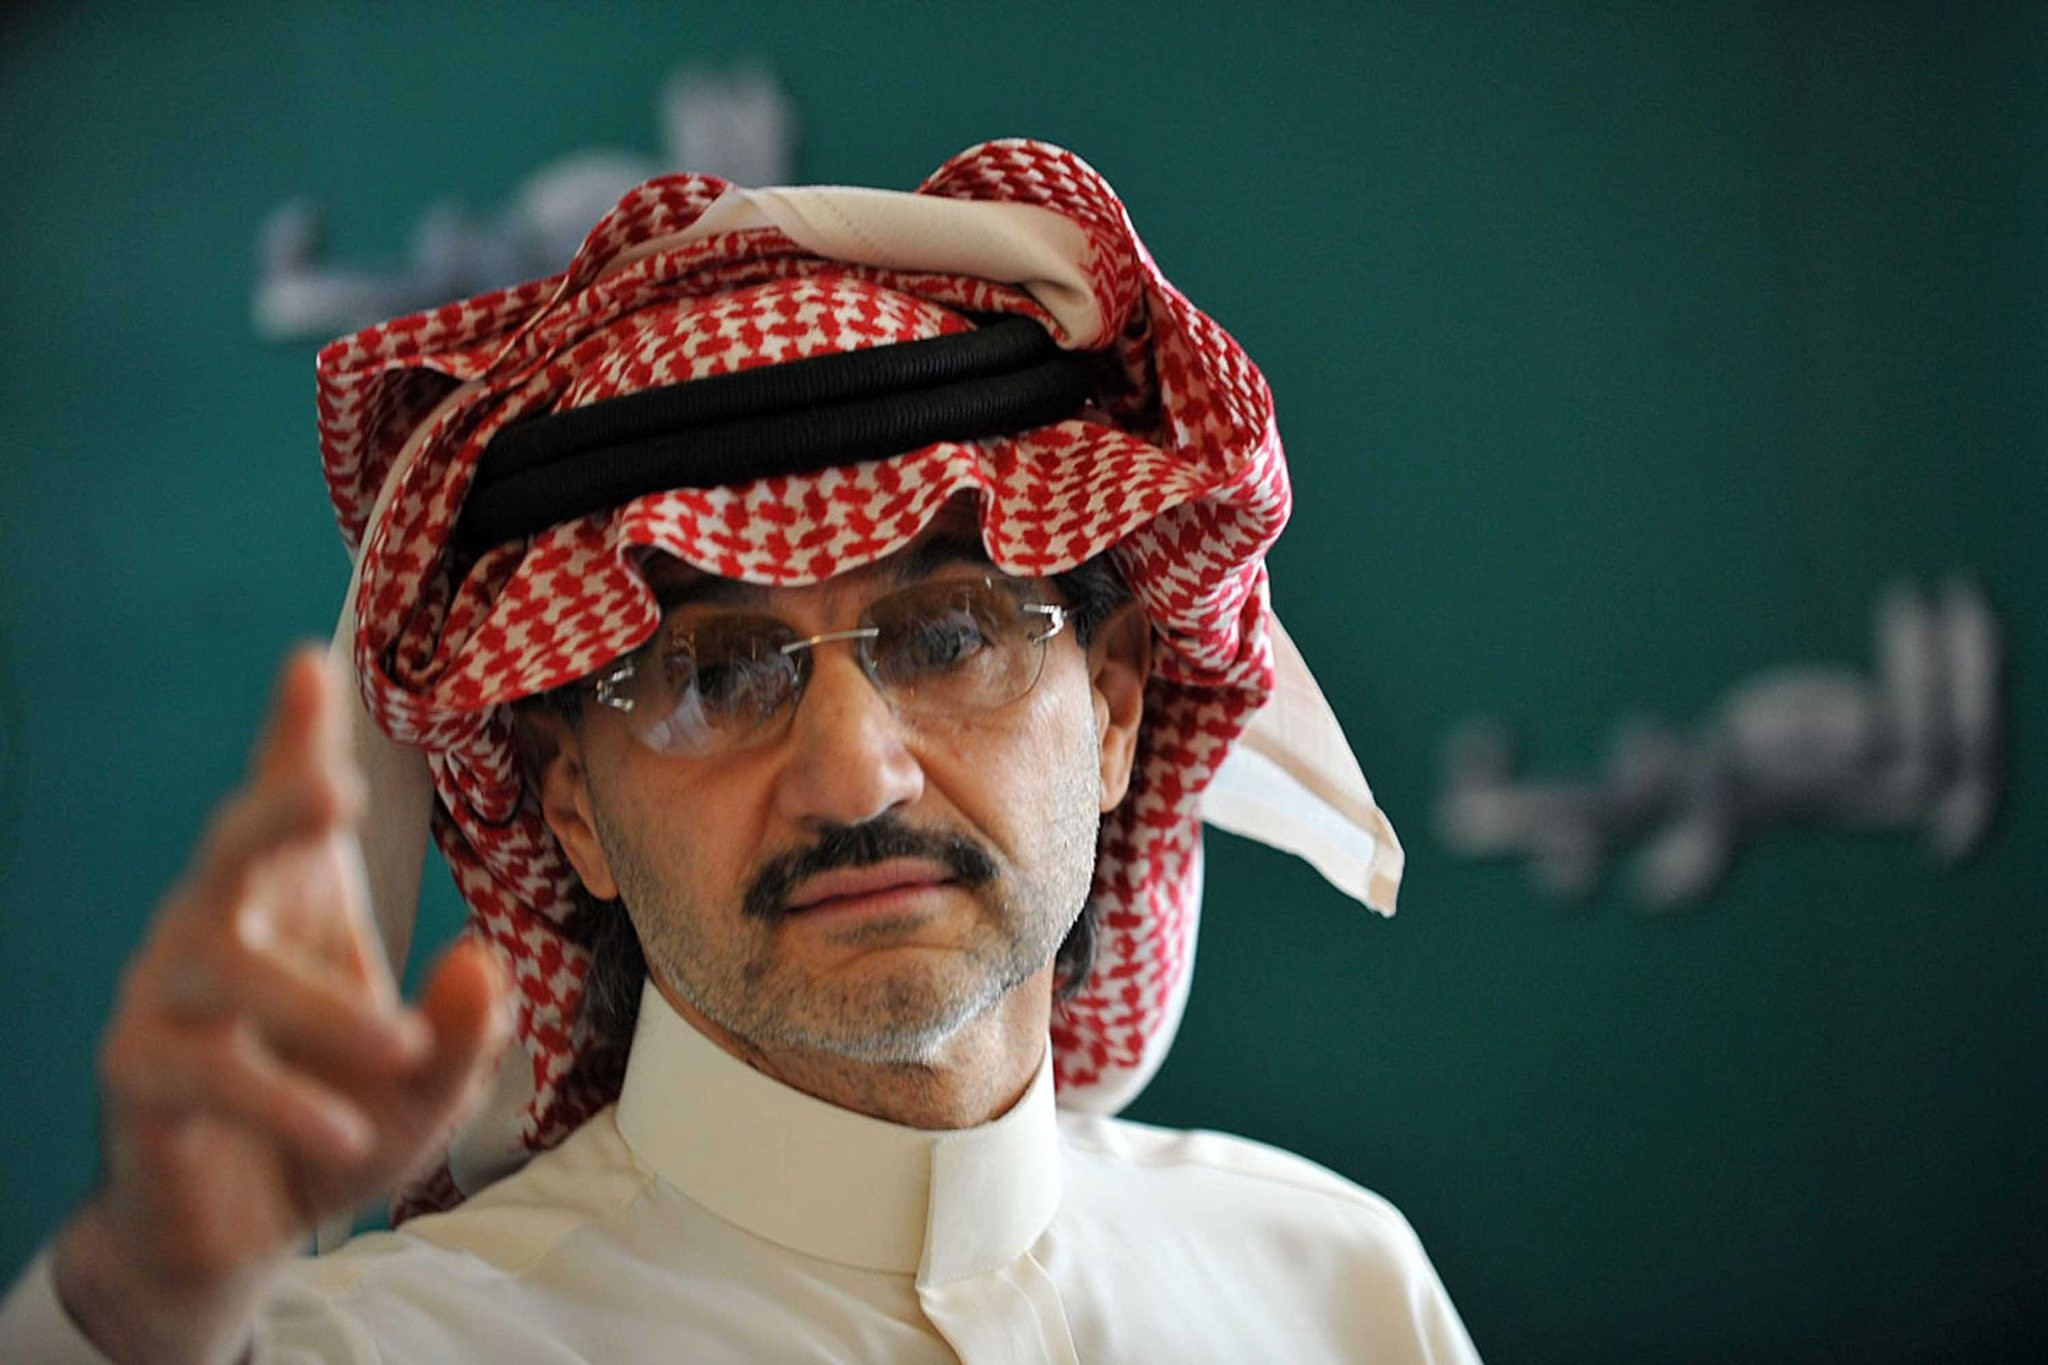 Saudi billionaire owner of Kingdom Holding Company Prince Alwaleed bin Talal gestures during a press conference, on September 13, 2011, in Riyadh. (AFP Photo)